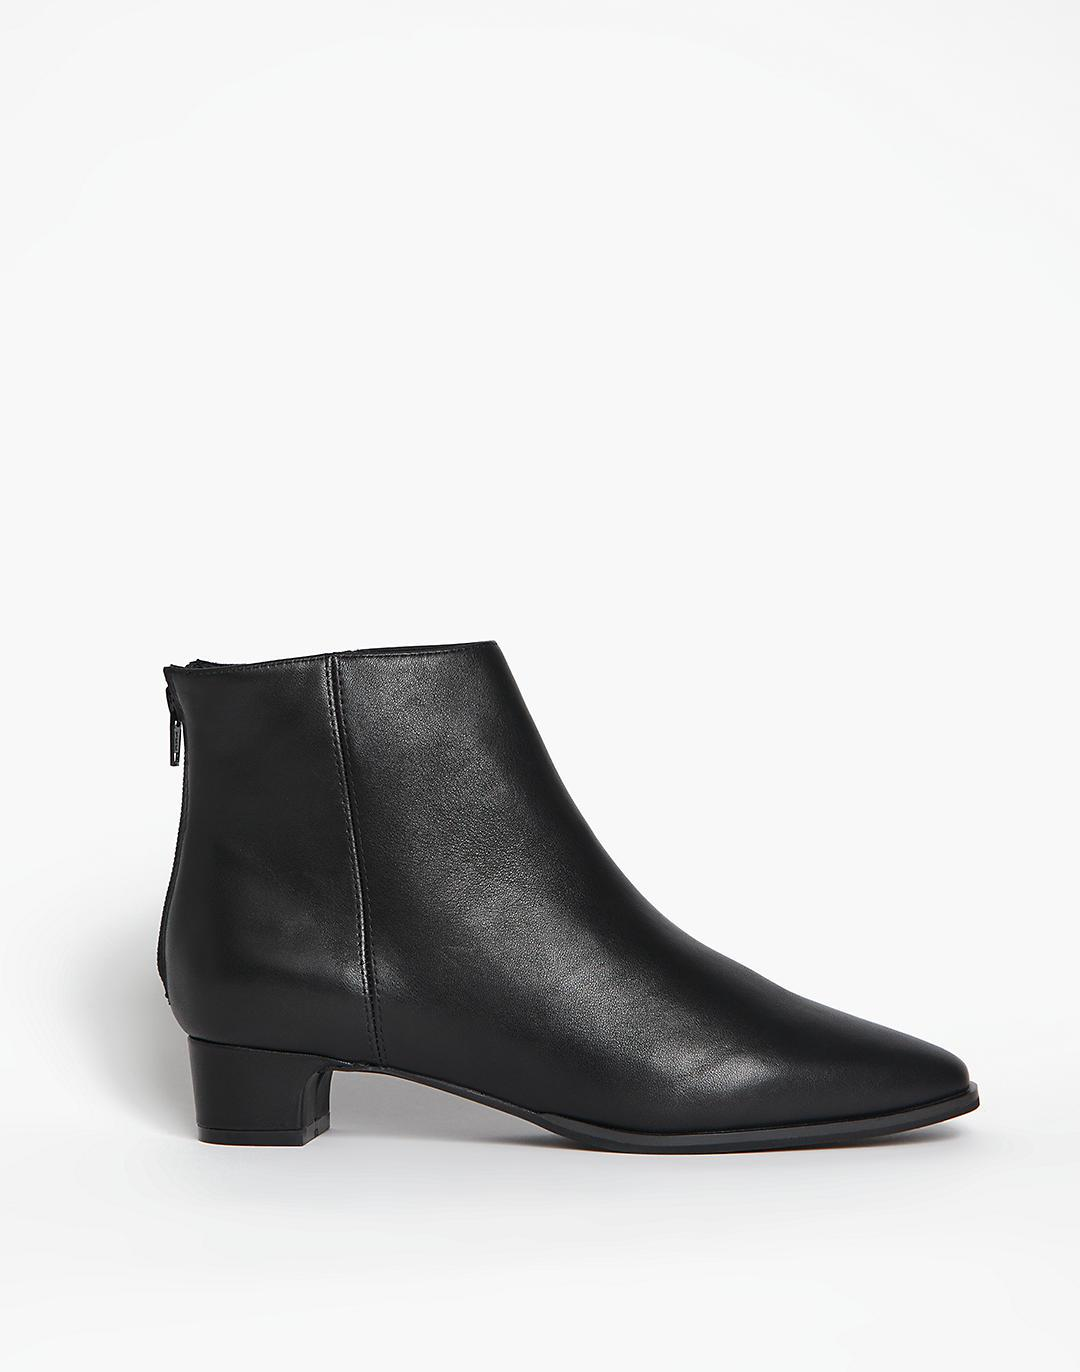 INTENTIONALLY BLANK Gary Boots 1